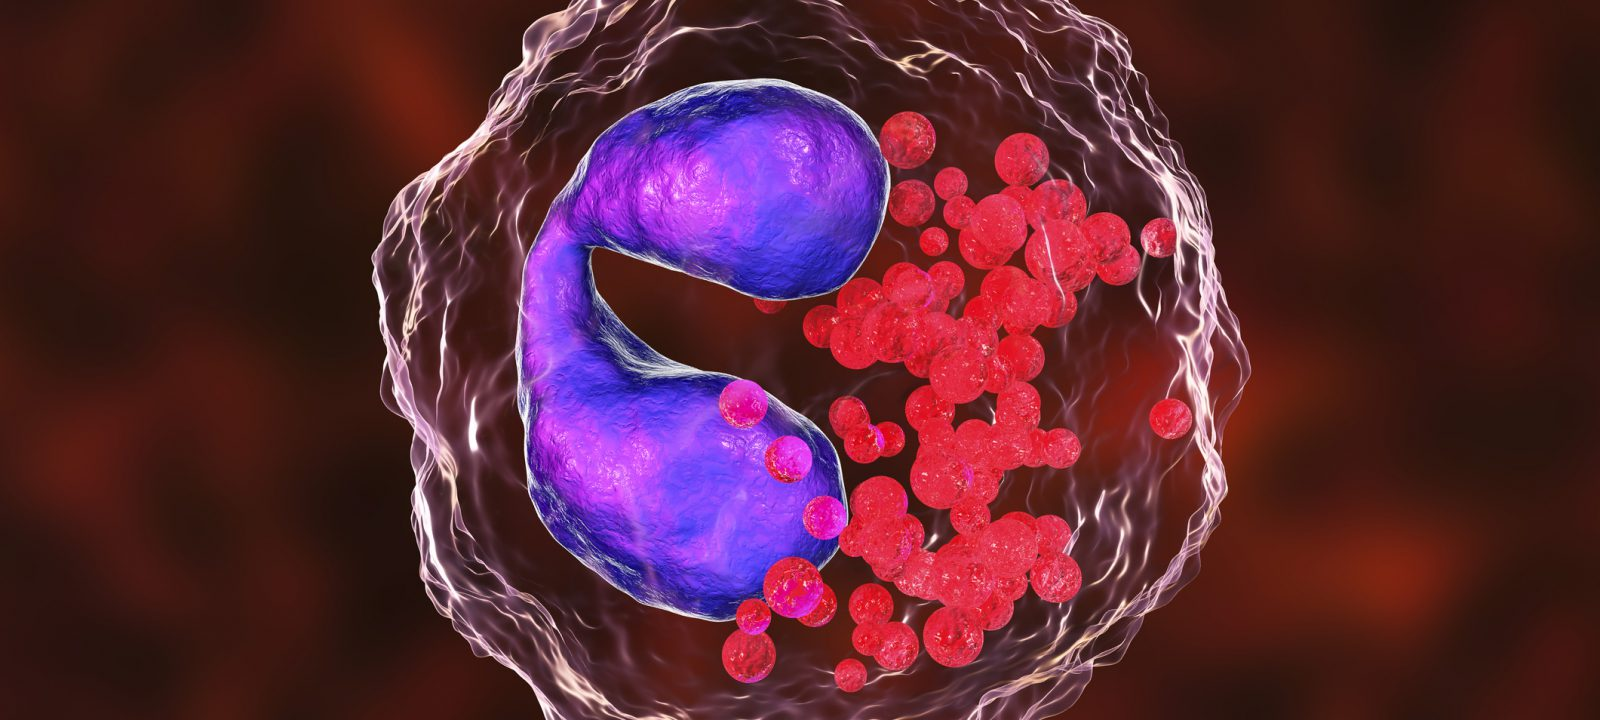 Eosinophil, a white blood cell, 3D illustration. Eosinophils are granulocytes taking part in allergy and asthma, protection against multicellular parasites